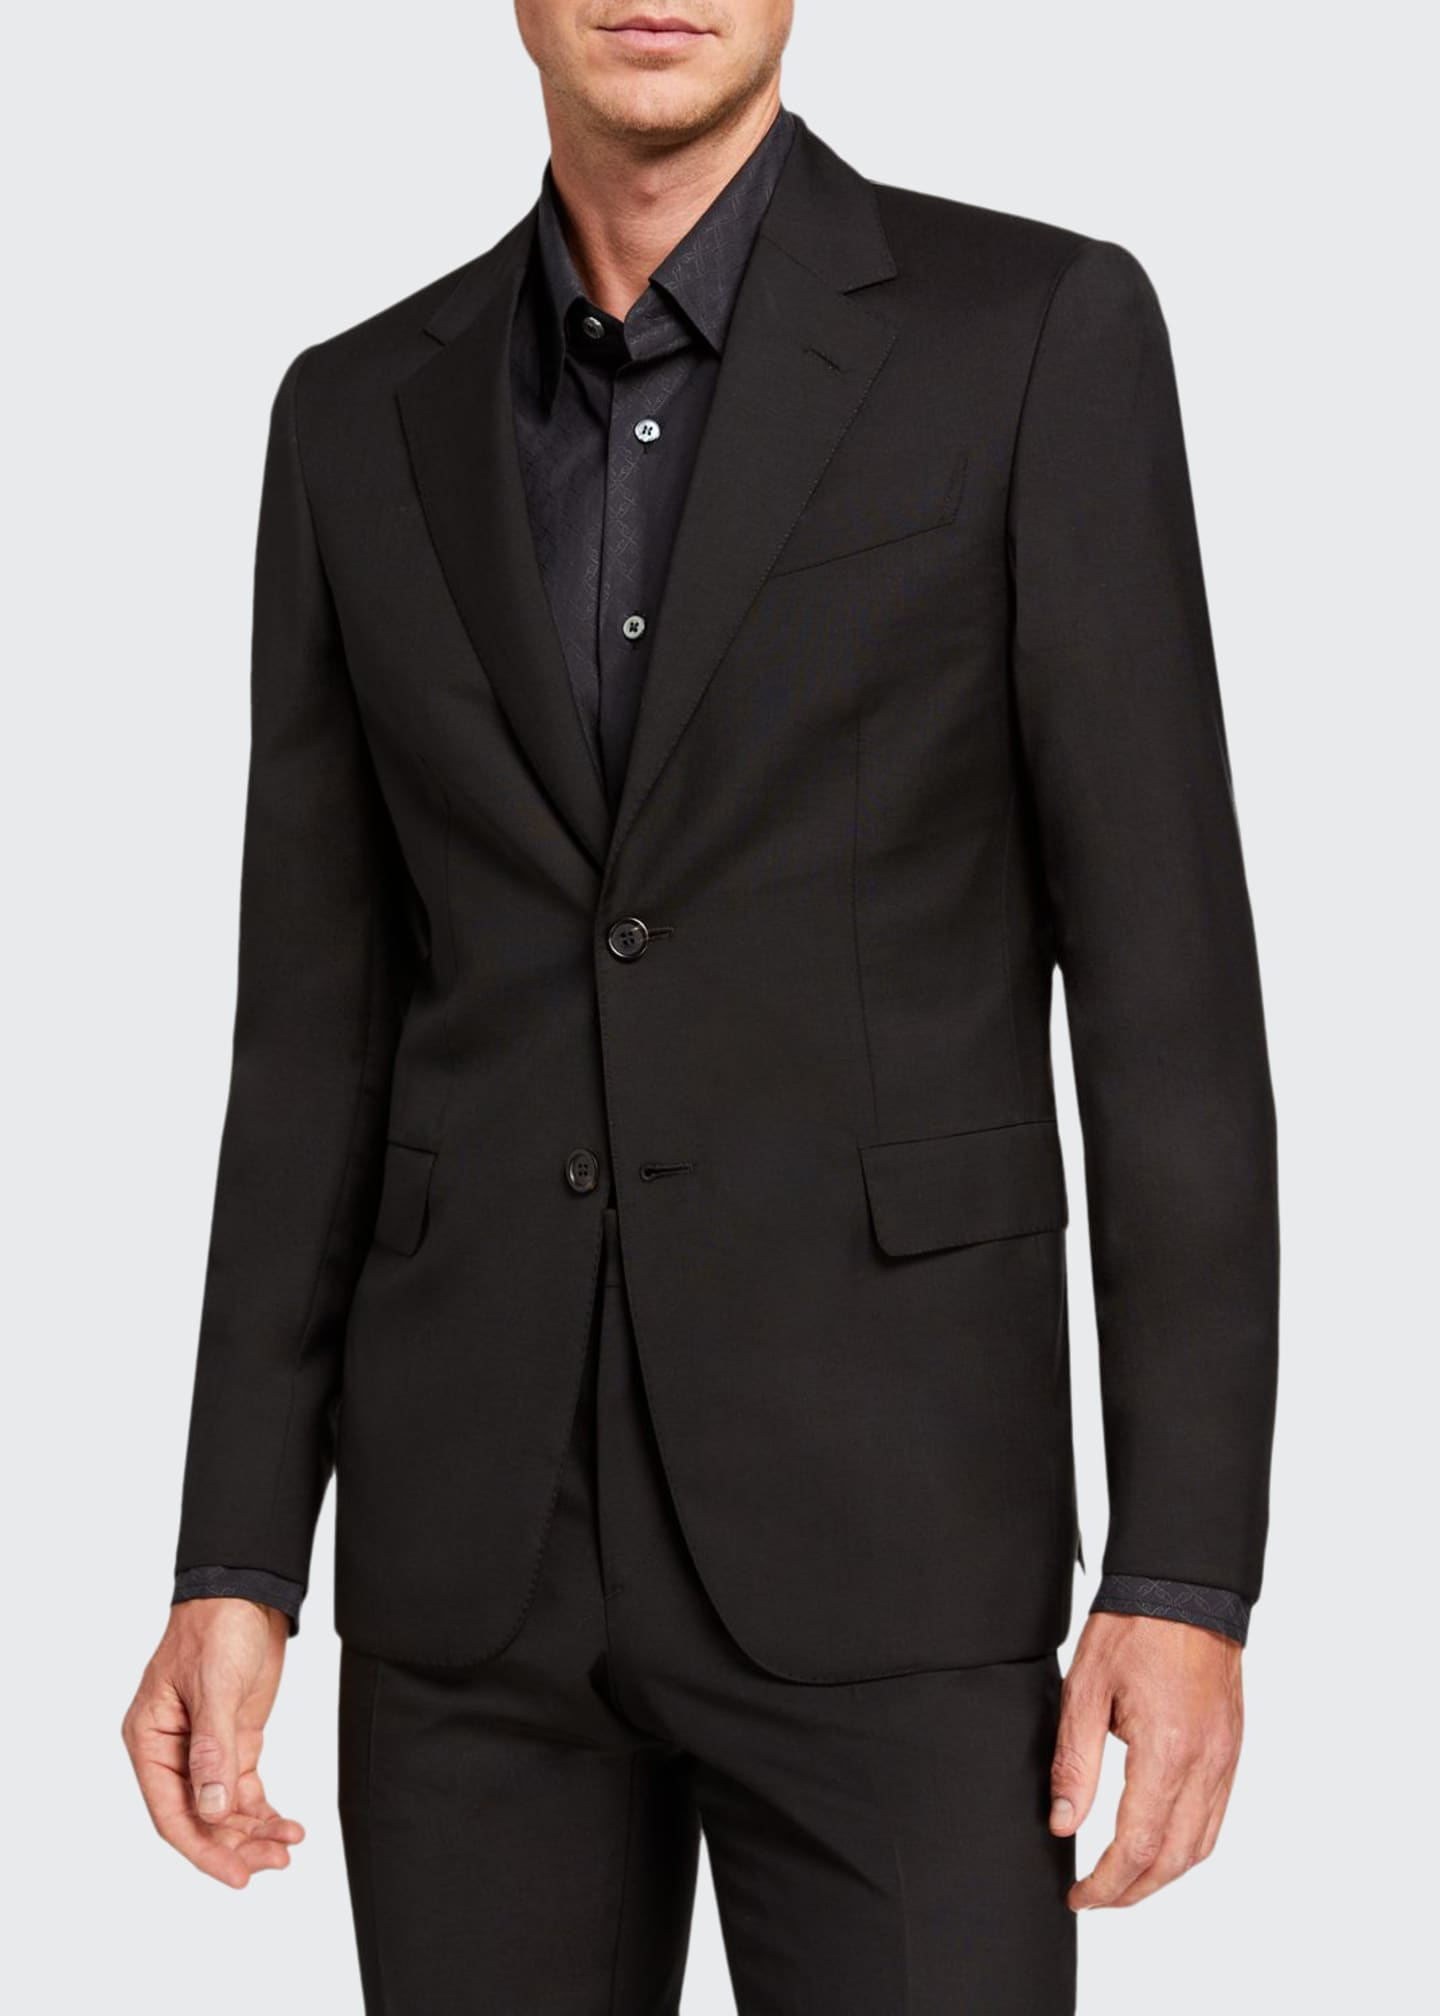 Image 1 of 4: Men's Solid Two-Piece Virgin Wool Suit